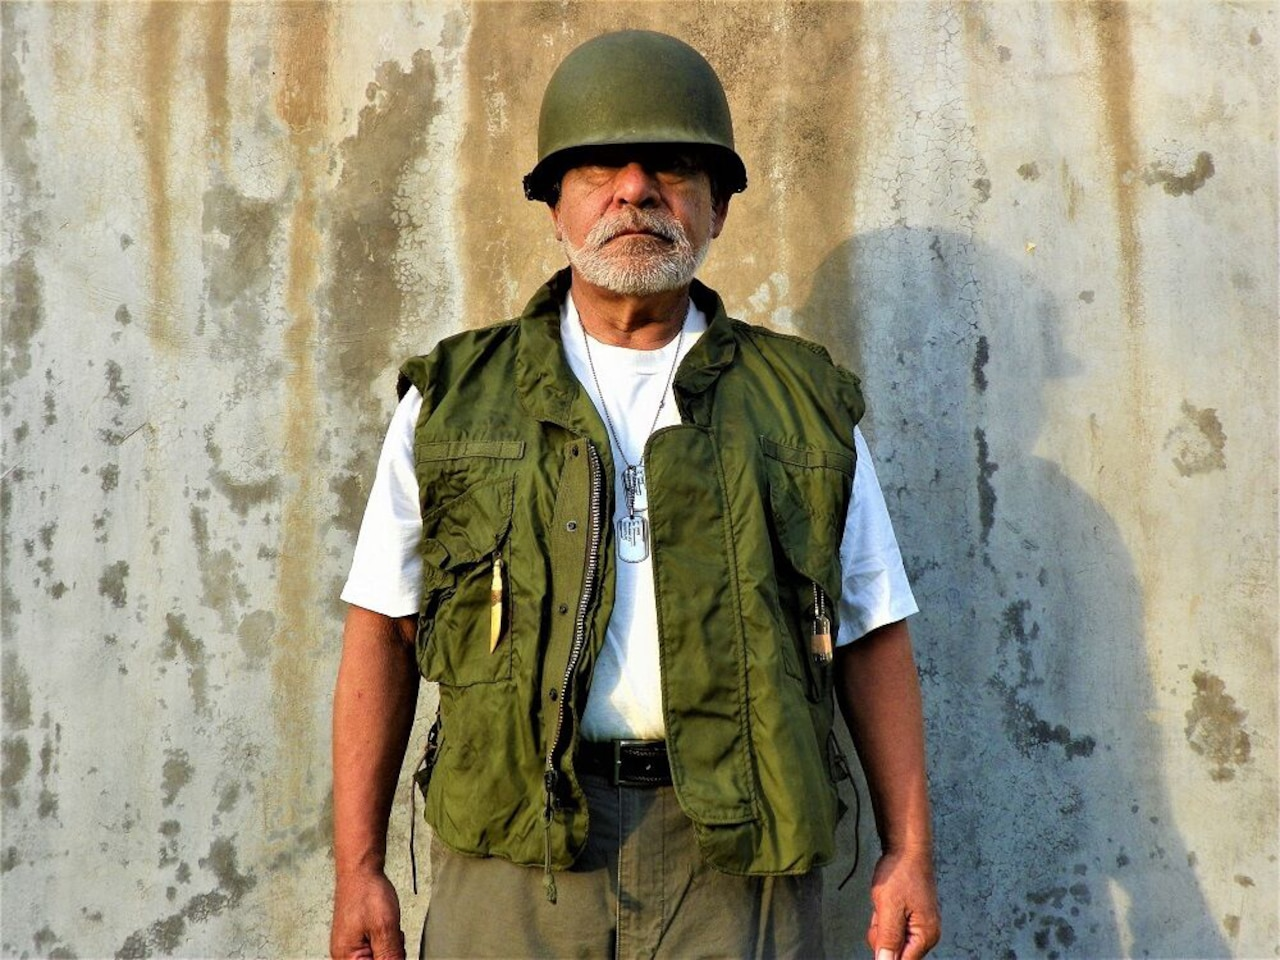 A man in a military helmet and vest stands for a photo.